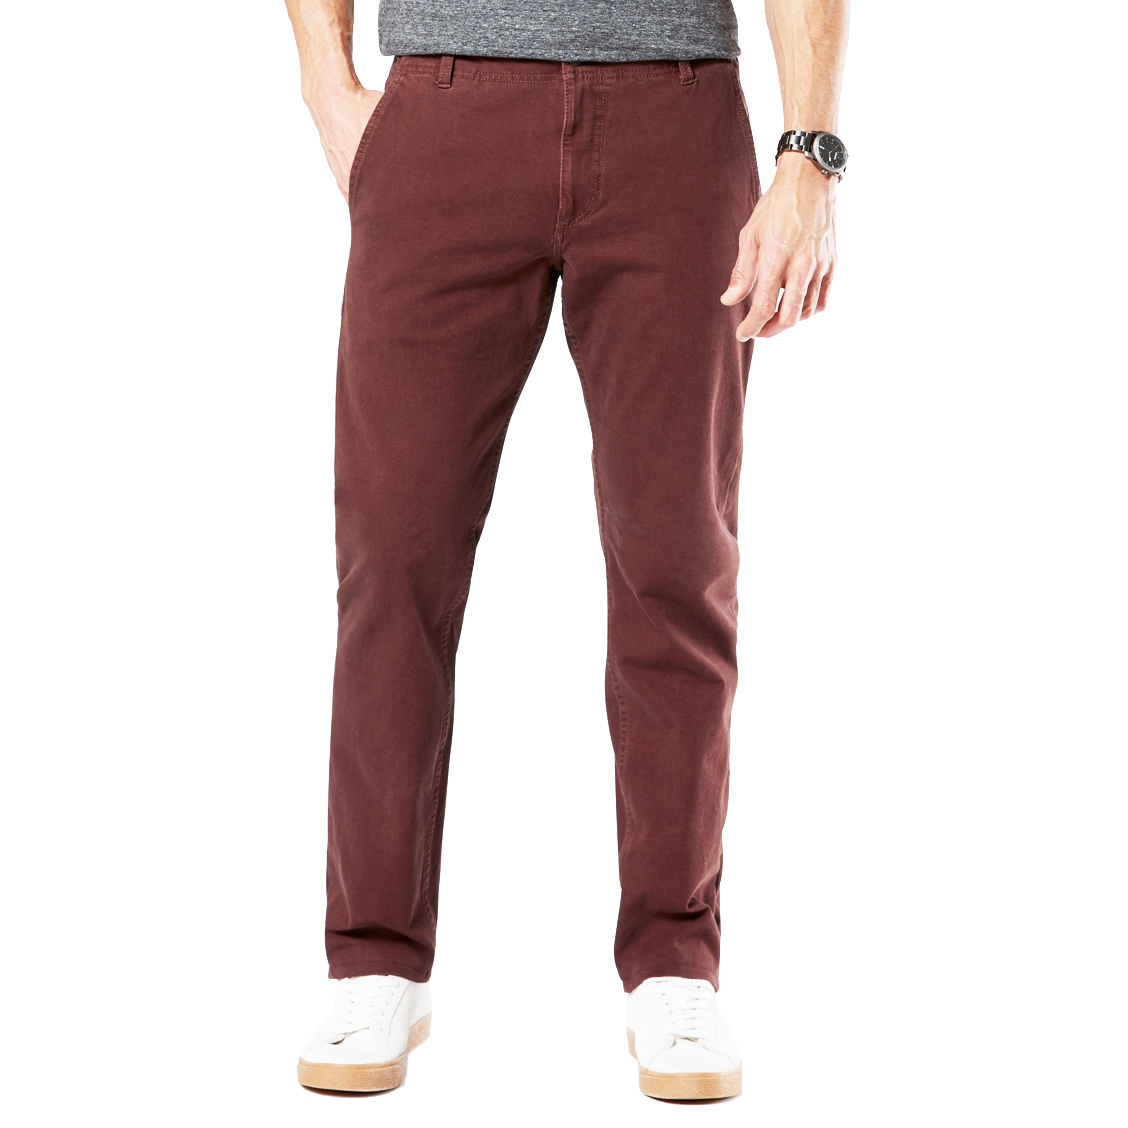 Pantalon  alpha khaki en coton stretch rouge bordeaux